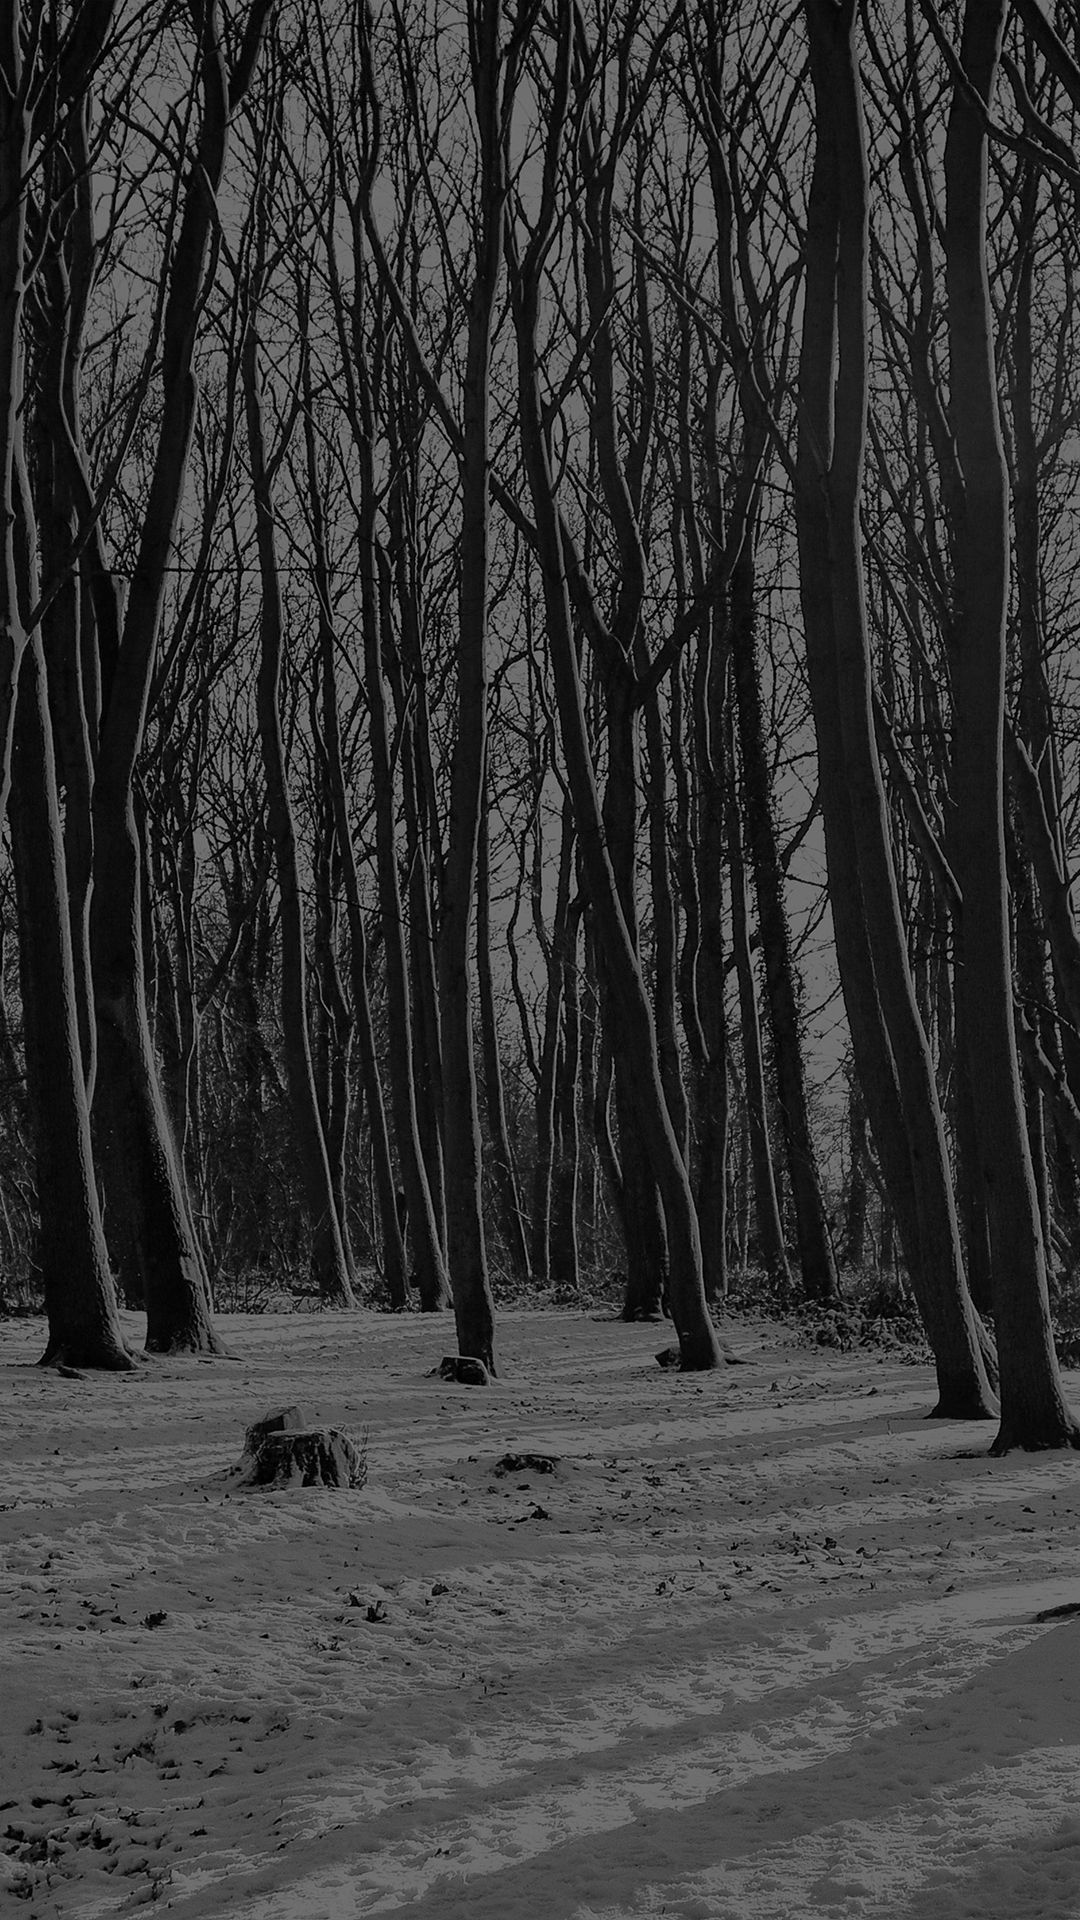 Wallpaper iphone winter - Cold Winter Forest Snow Nature Mountain Dark Iphone 6 Plus Wallpaper